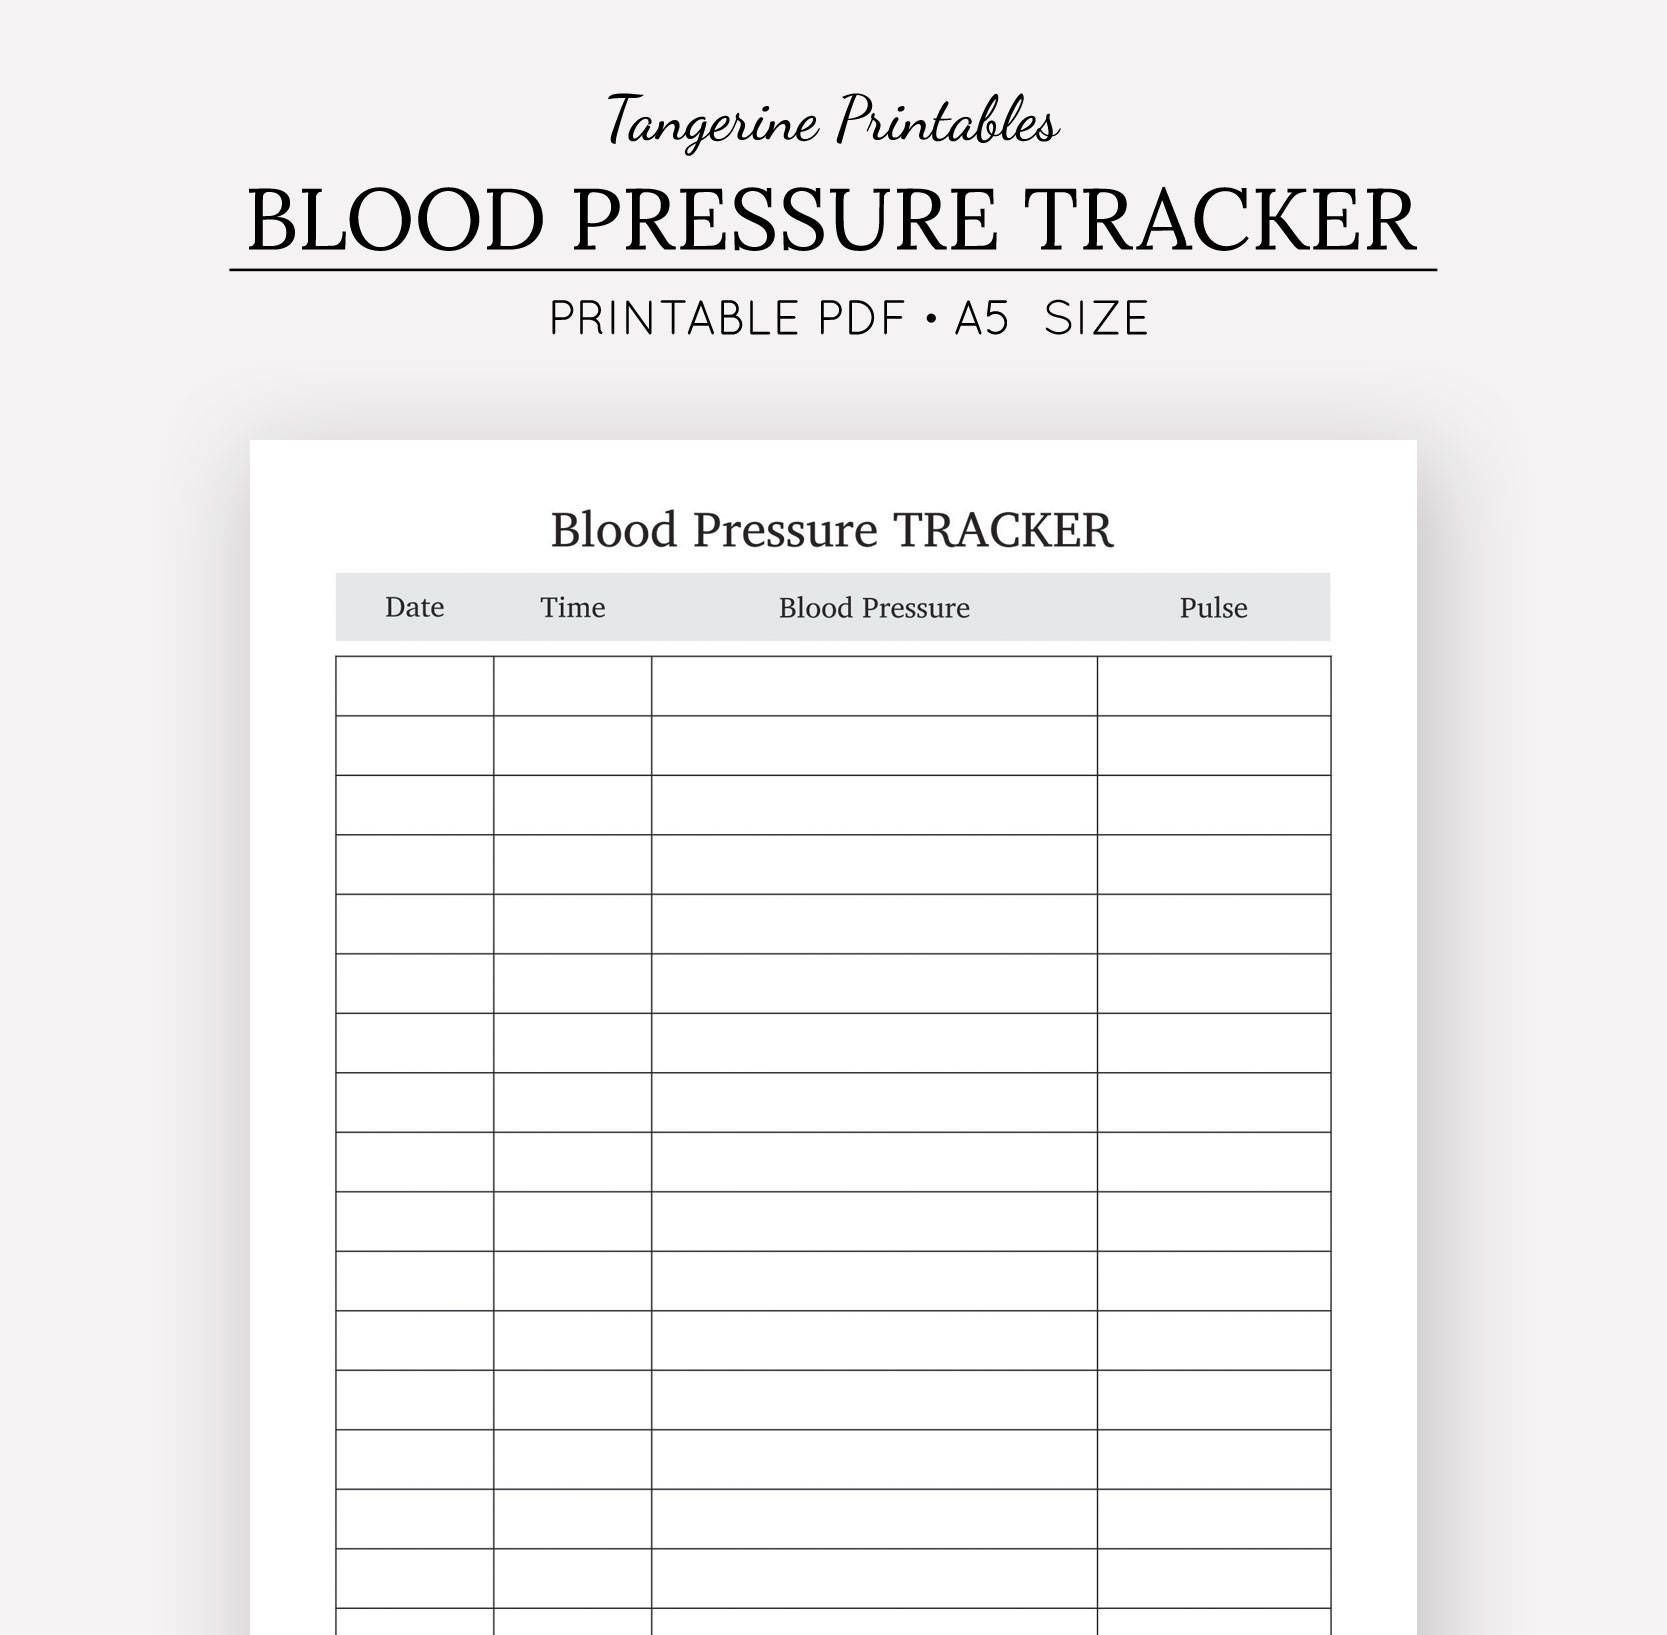 image about Printable Blood Pressure Tracker called Blood Anxiety Tracker Exercise Magazine A5 A4 US Letter